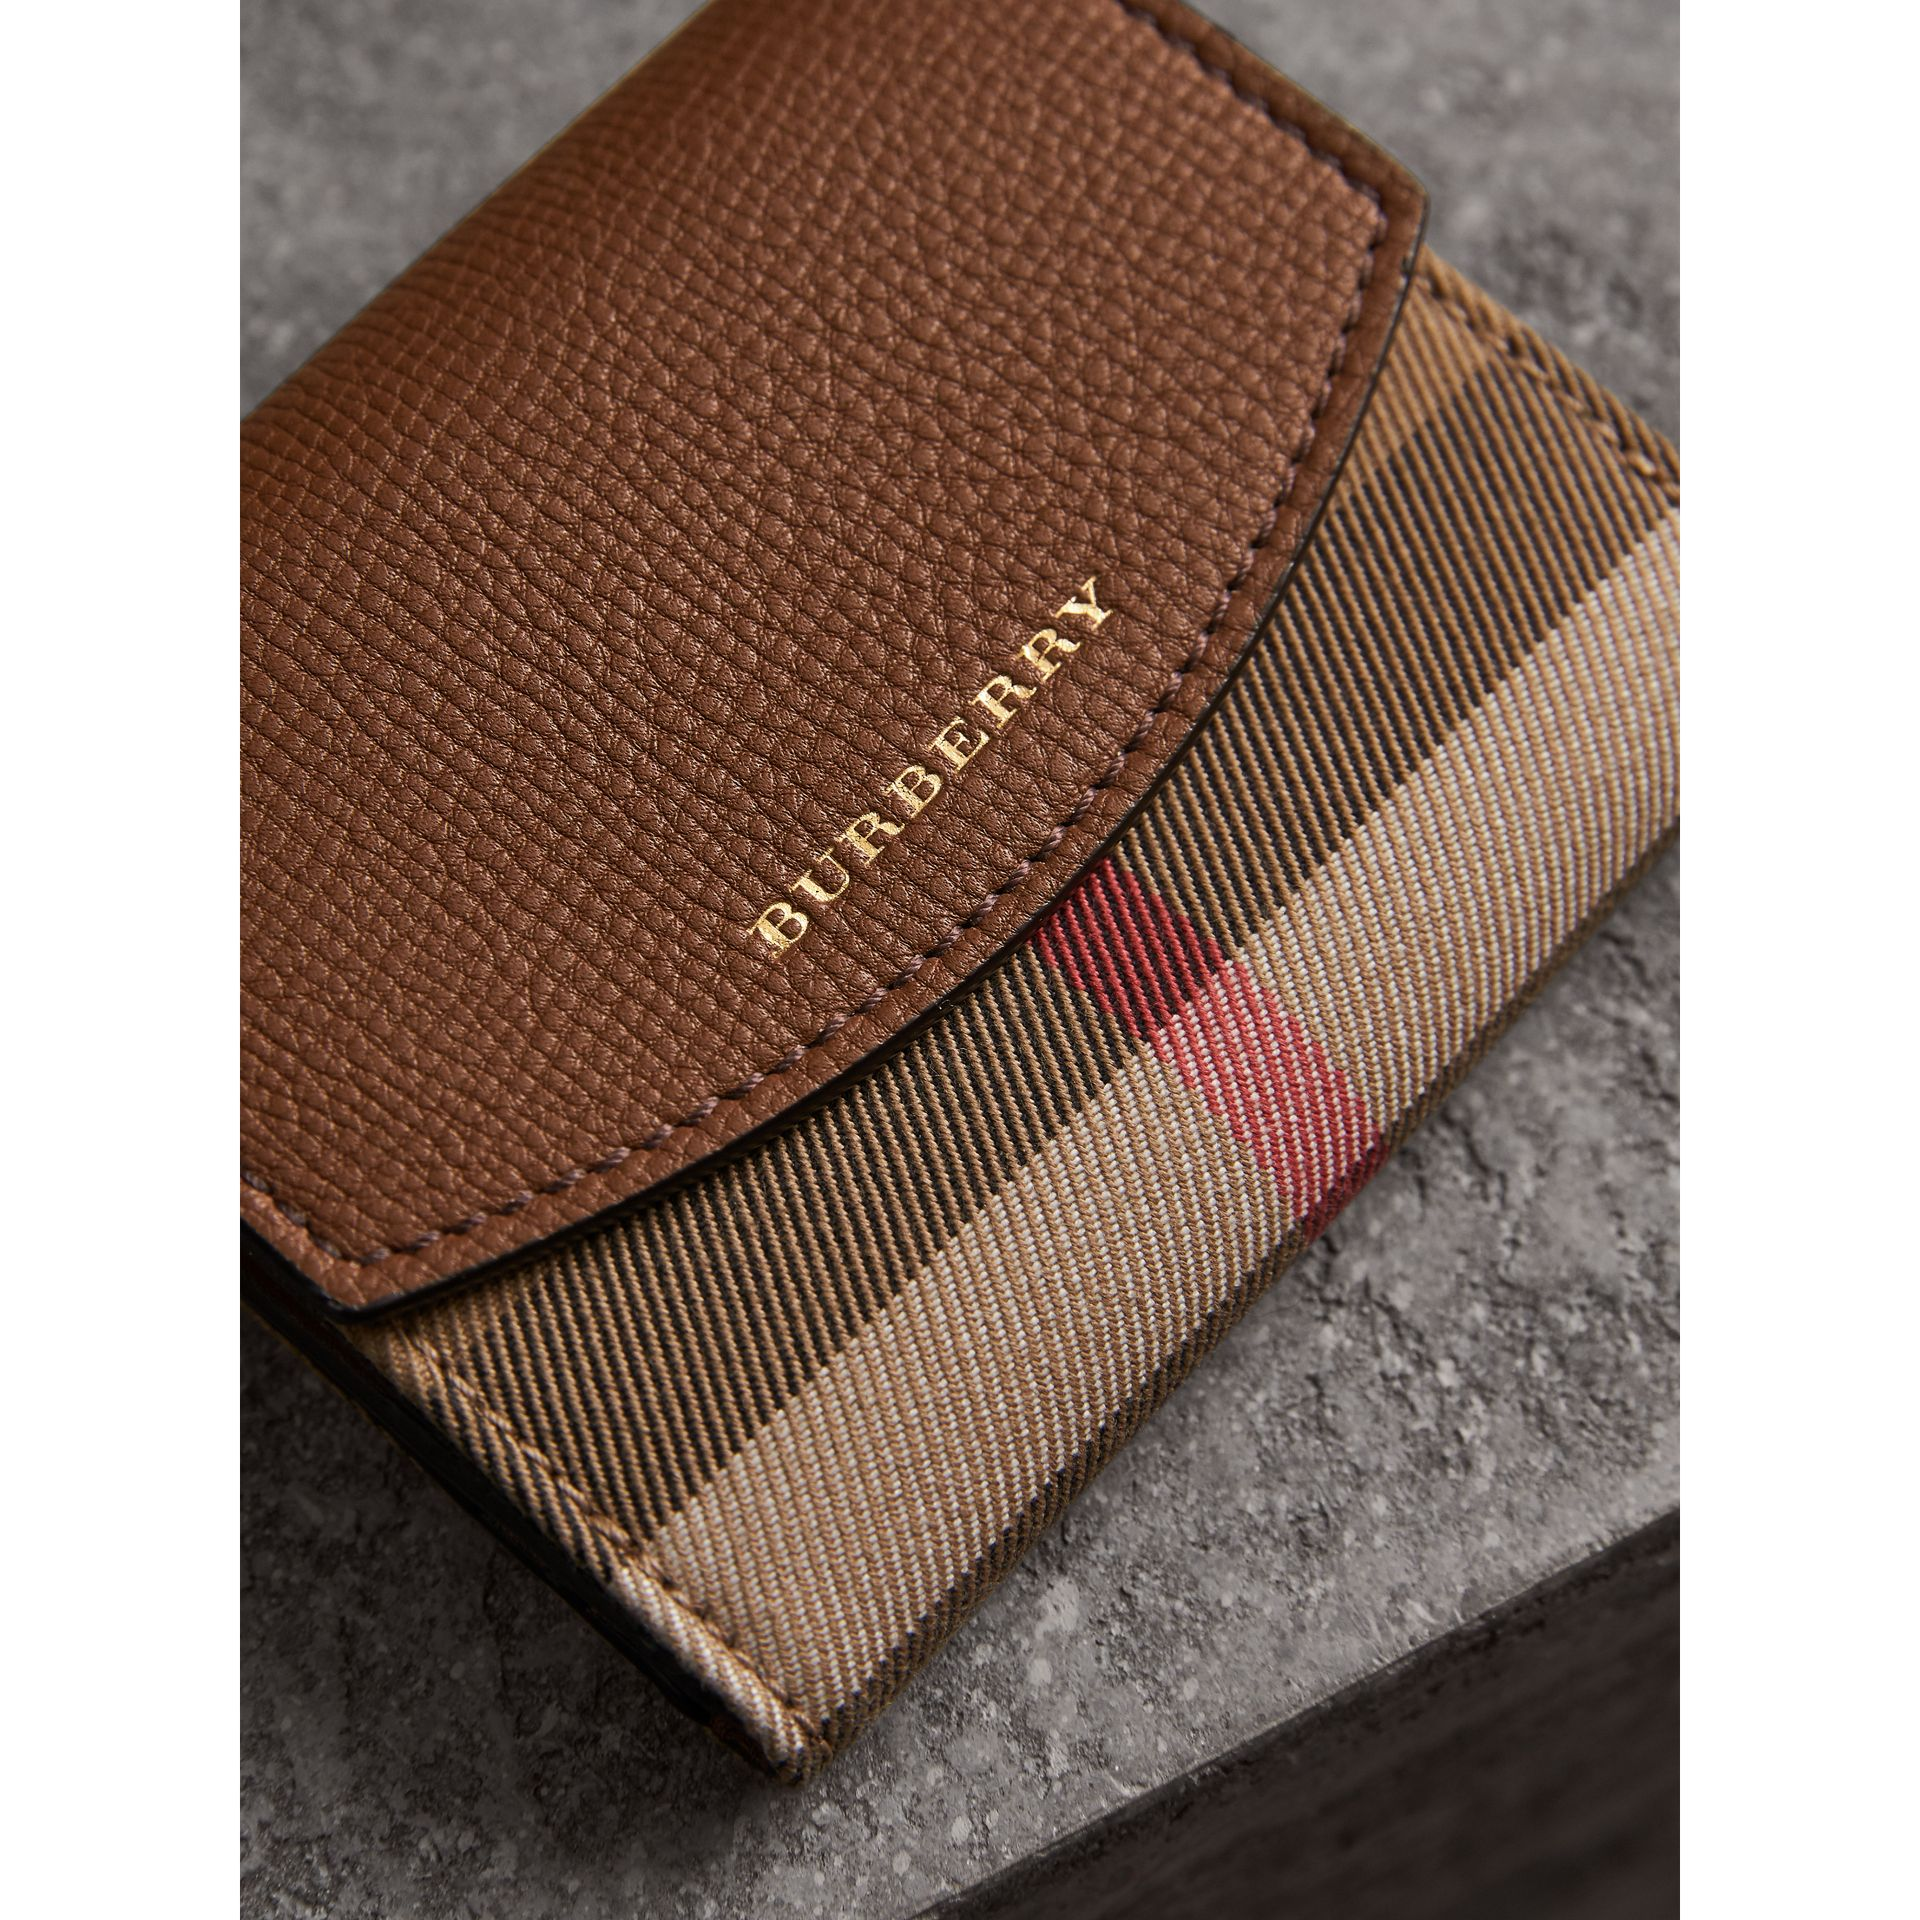 House Check and Leather Wallet in Tan - Women | Burberry United States - gallery image 1